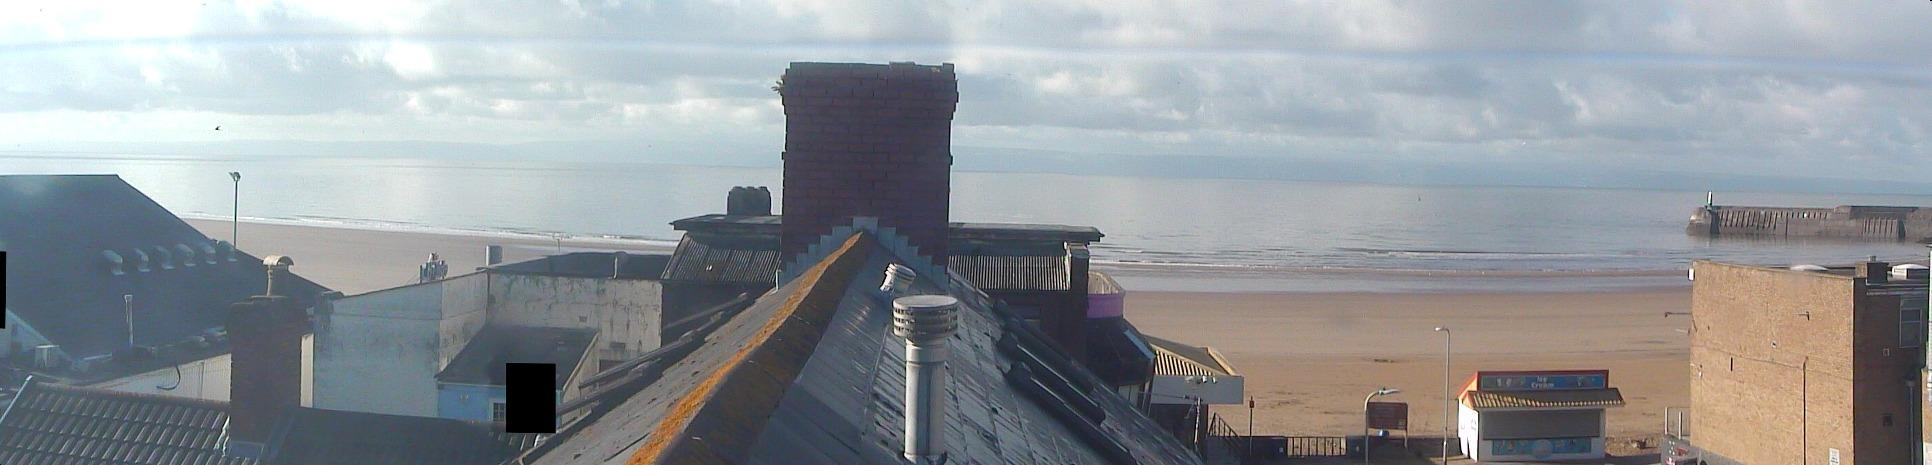 Latest webcam still for Porthcawl - Coney Beach